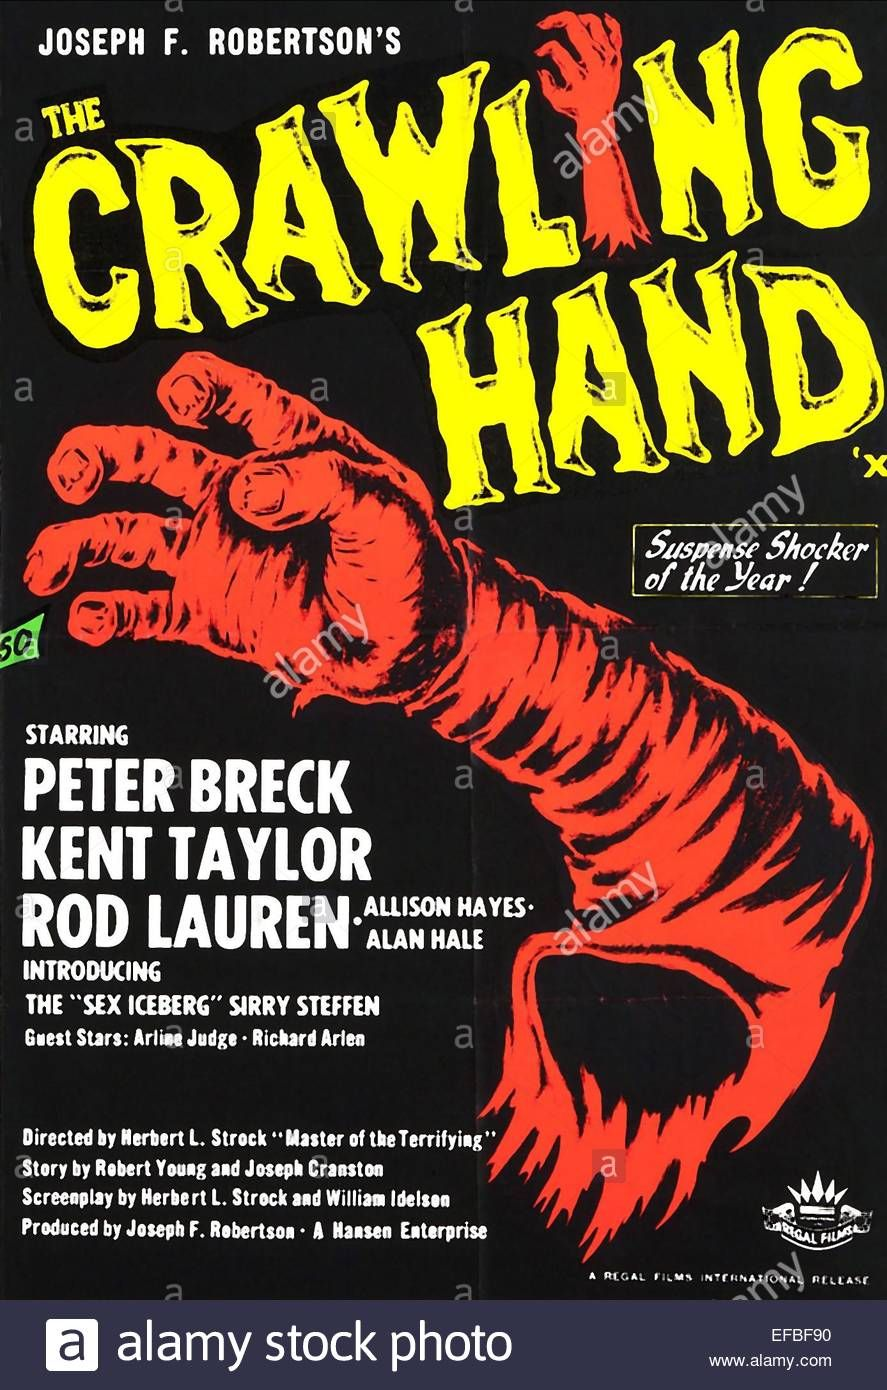 Movie Poster The Crawling Hand 1963 Stock Photo Golden Movies